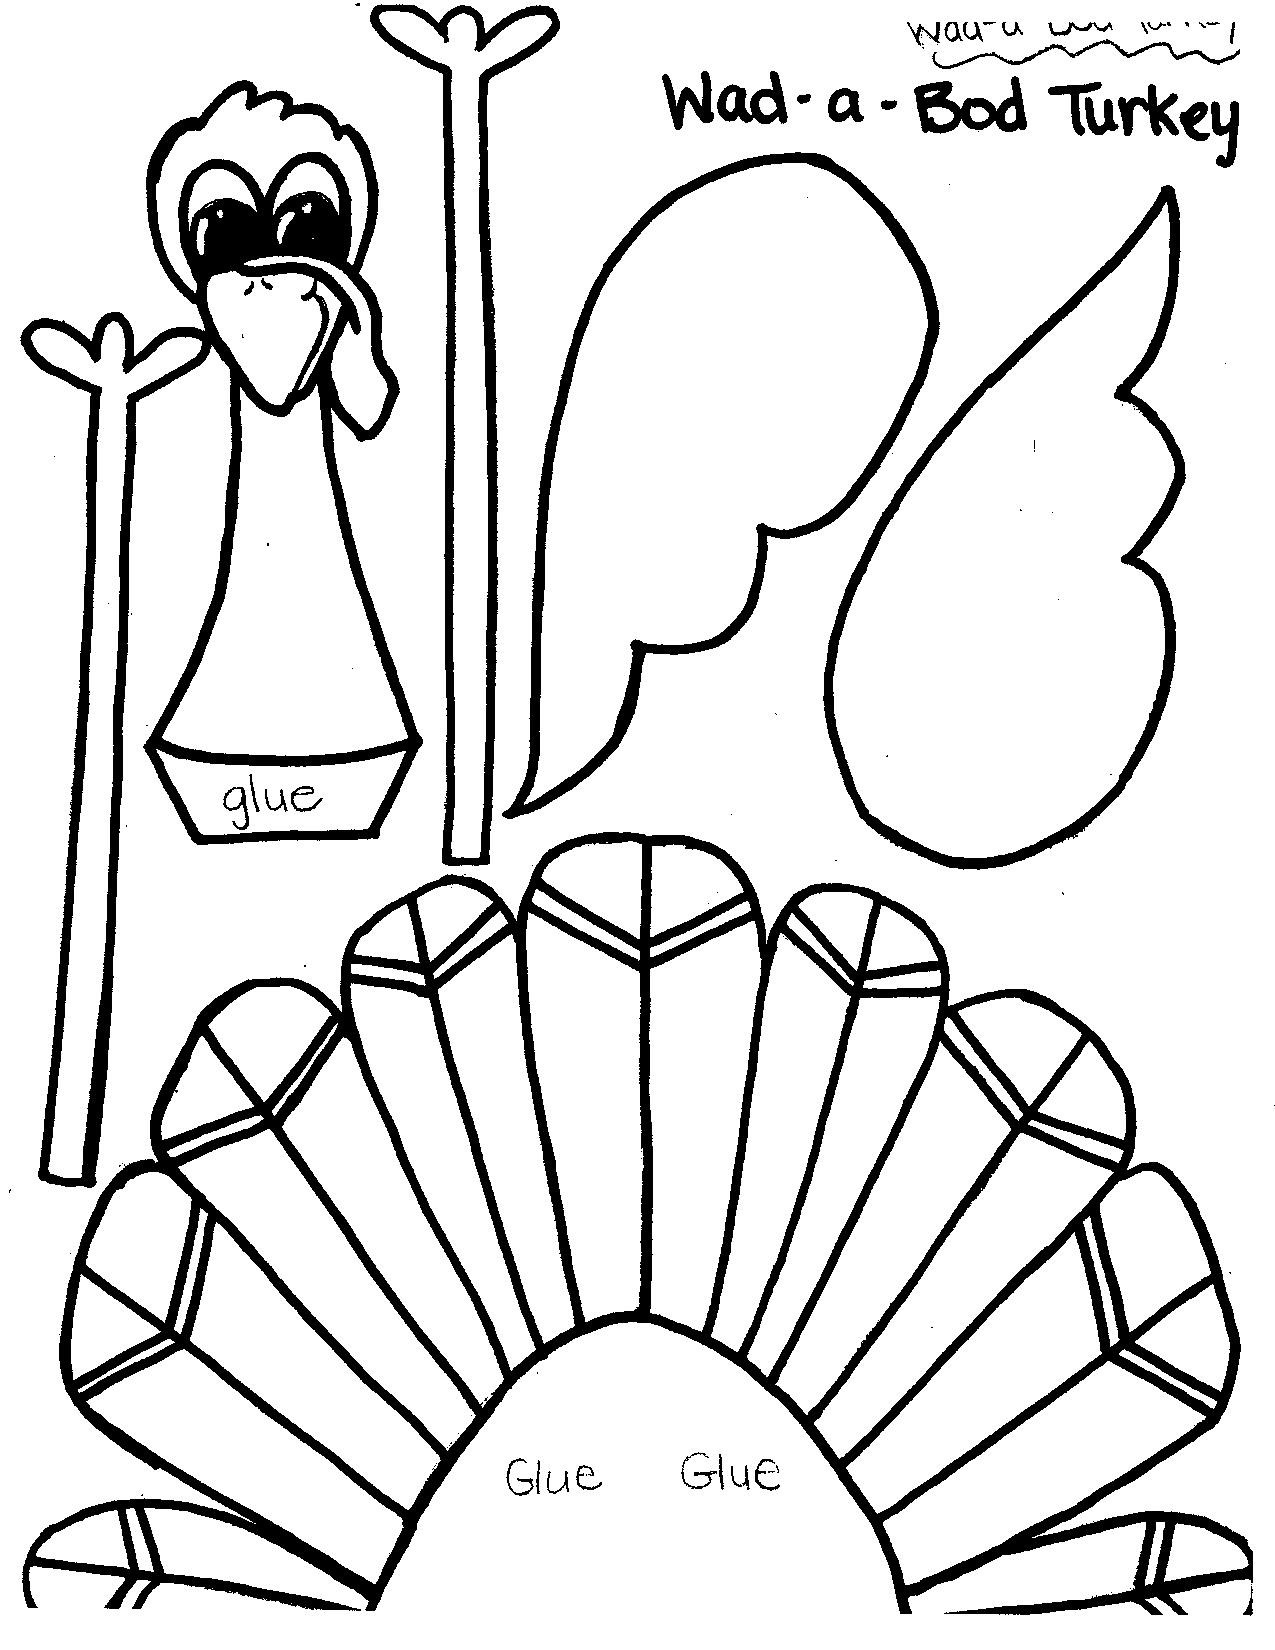 Thanksgiving Turkey Printable  Printable Thanksgiving Crafts and Activities for Kids